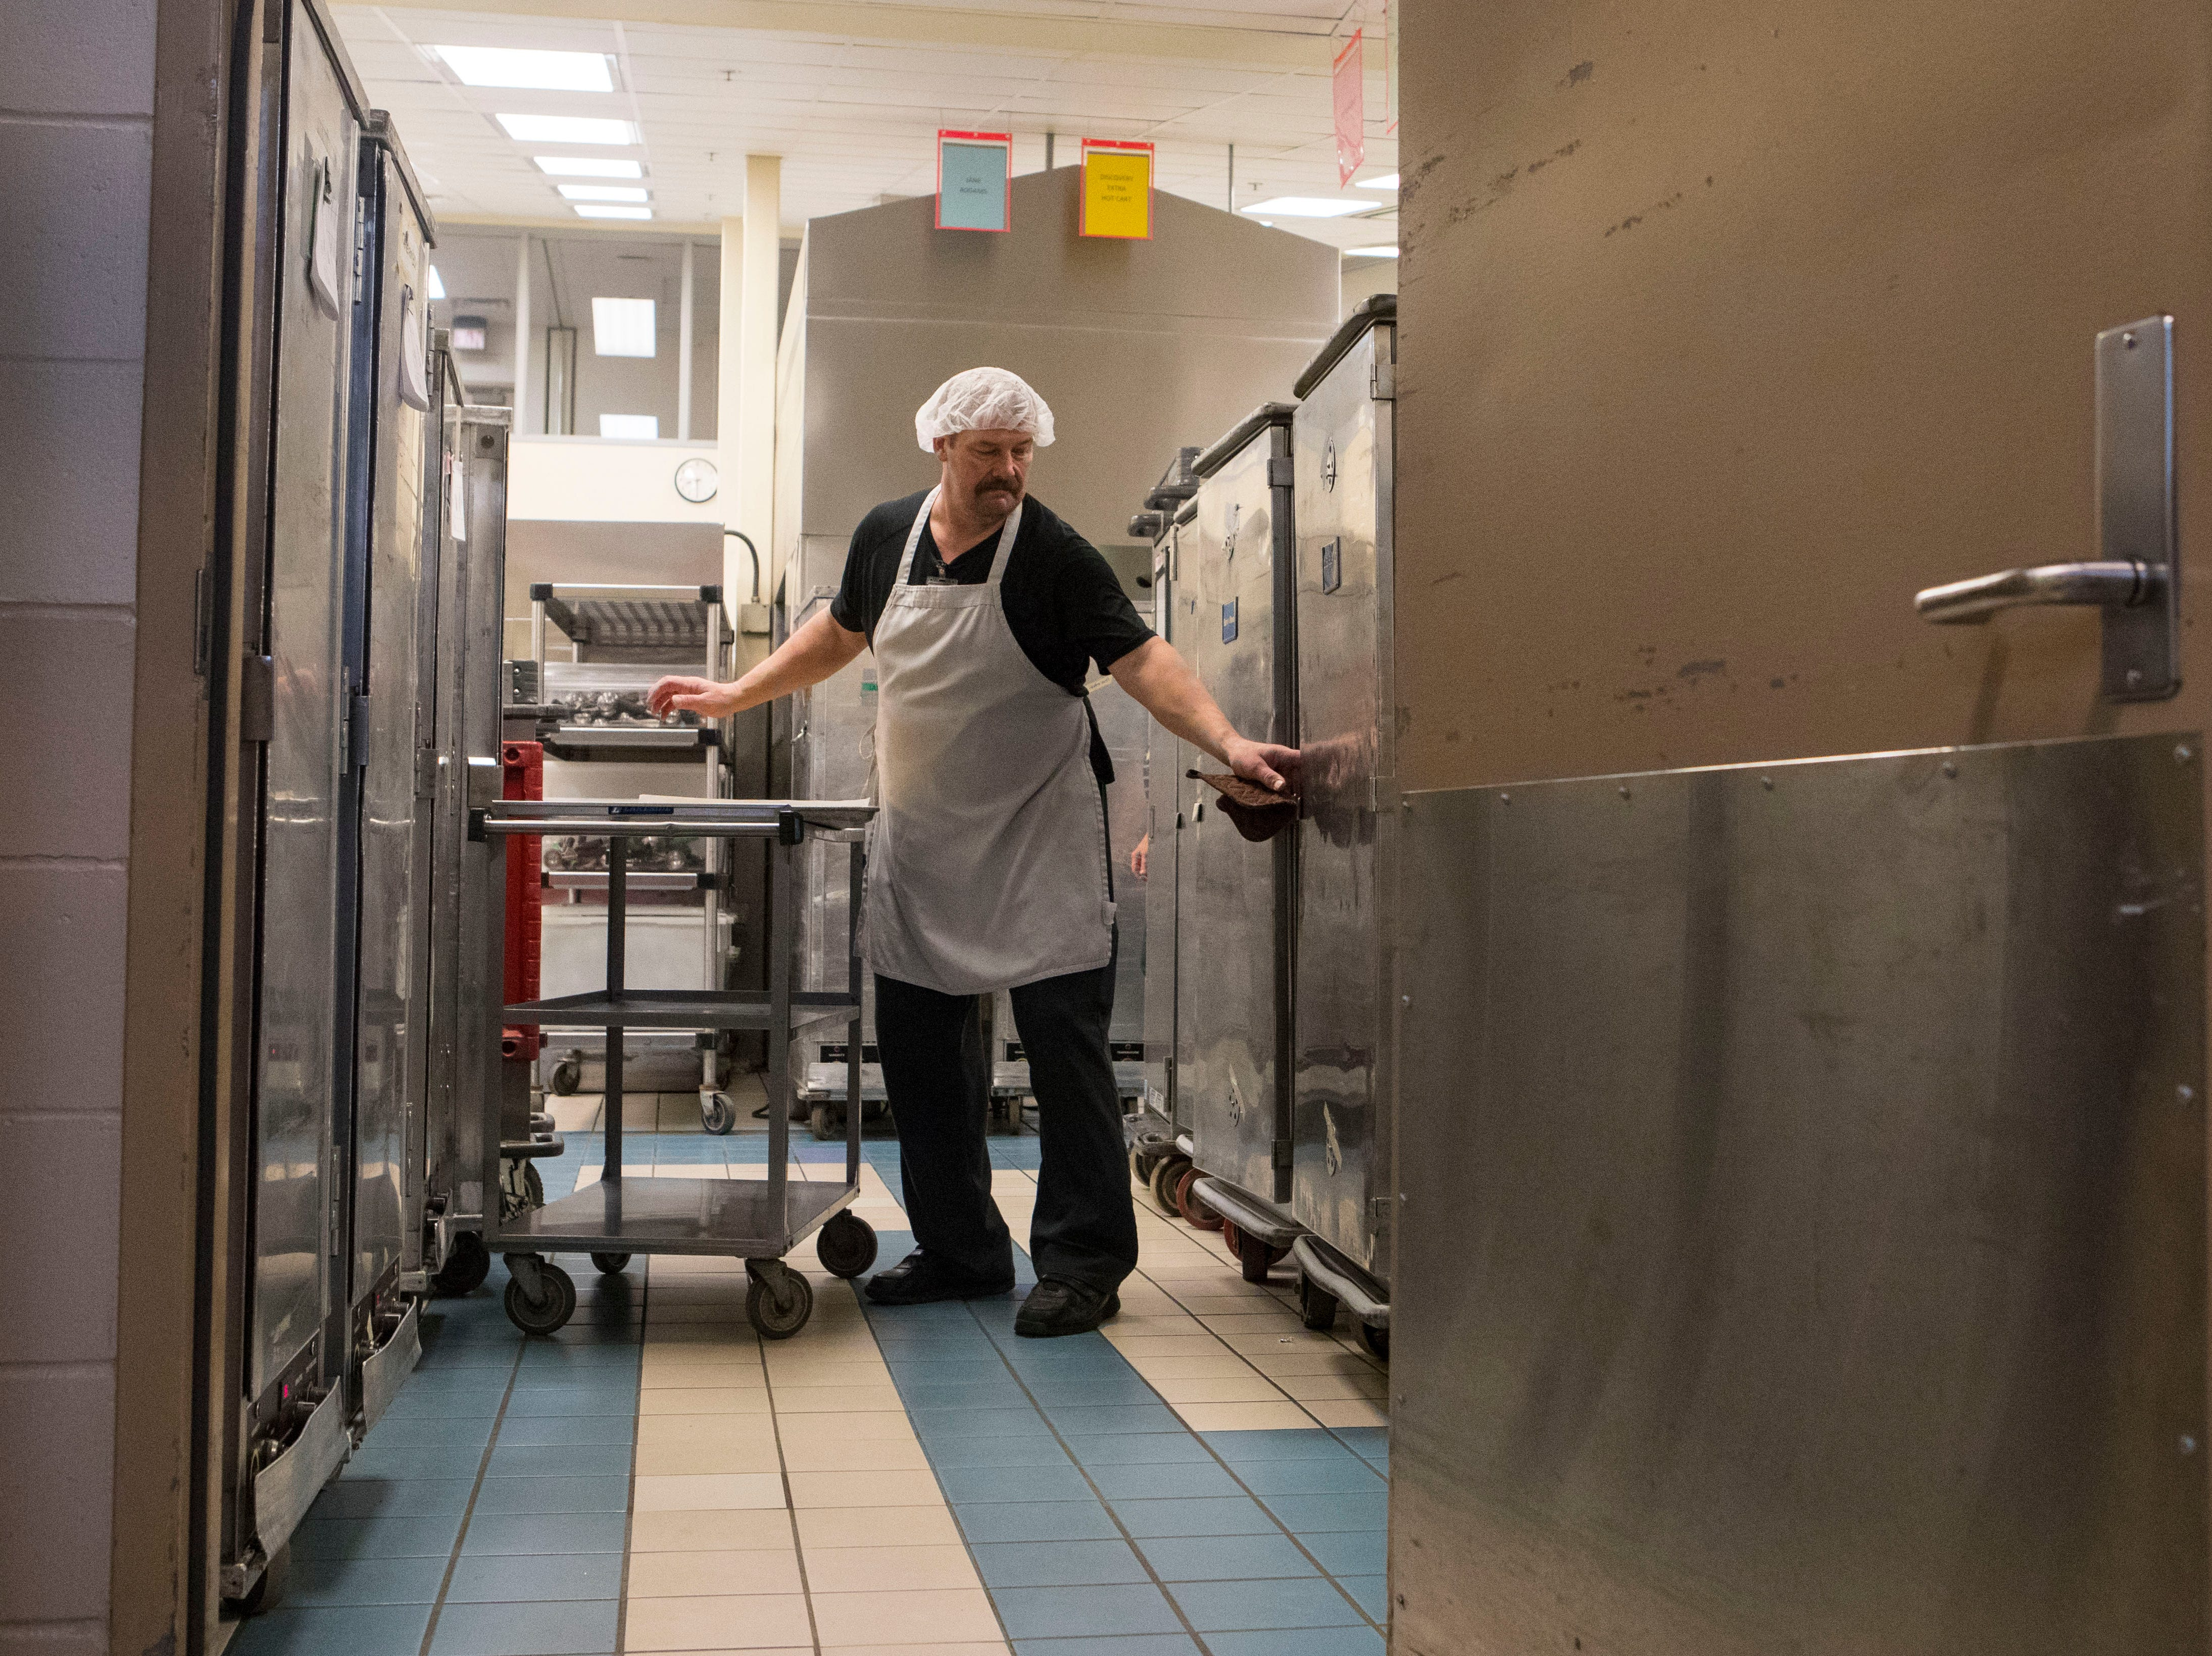 Bob Baade finishes last minute food preparations before the meals are transfer to the schools in Sioux Falls, S.D. at Child Nutrition Service, Tuesday, Jan. 8, 2019.